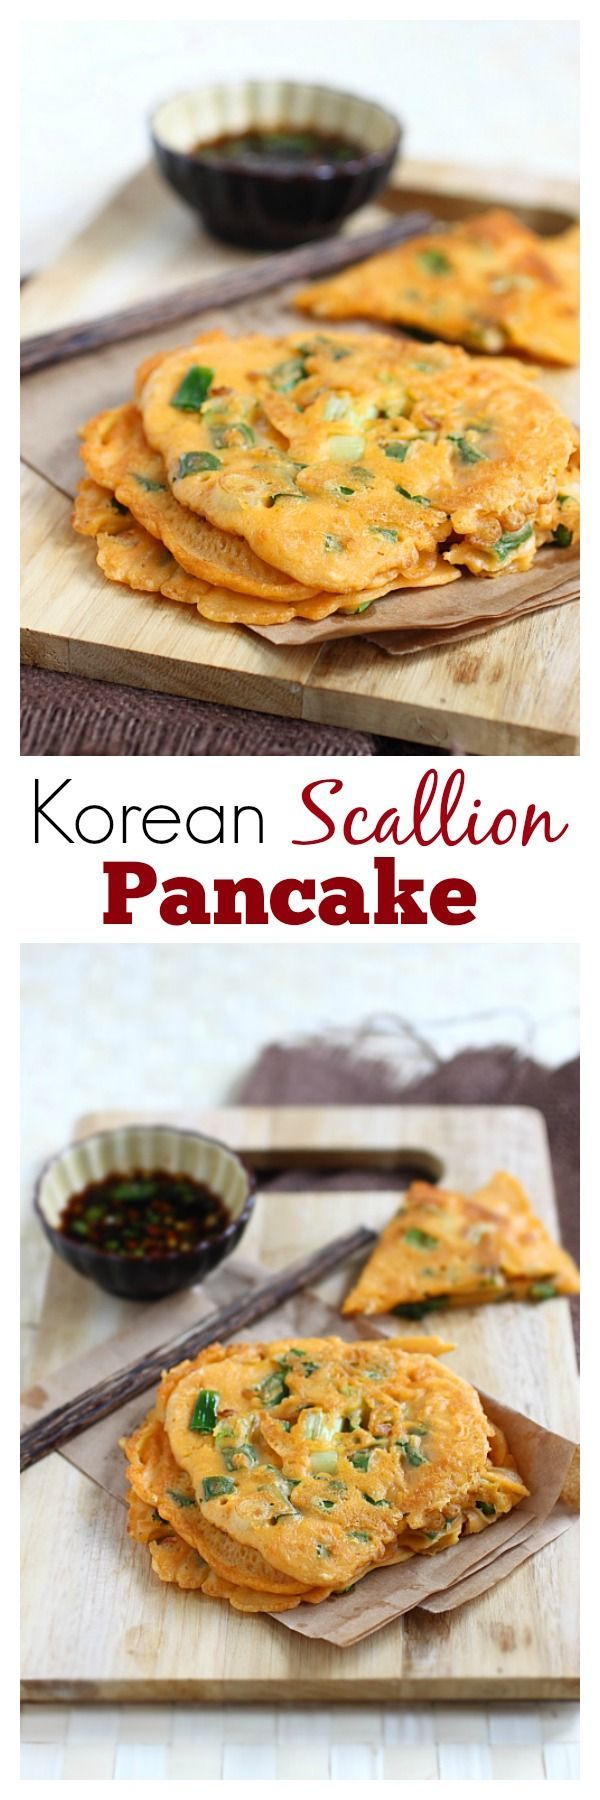 Korean Scallion Pancake (Pajeon) - savory pancake with scallion and kimchi, amazing appetizer that you can't stop eating | http://rasamalaysia.com